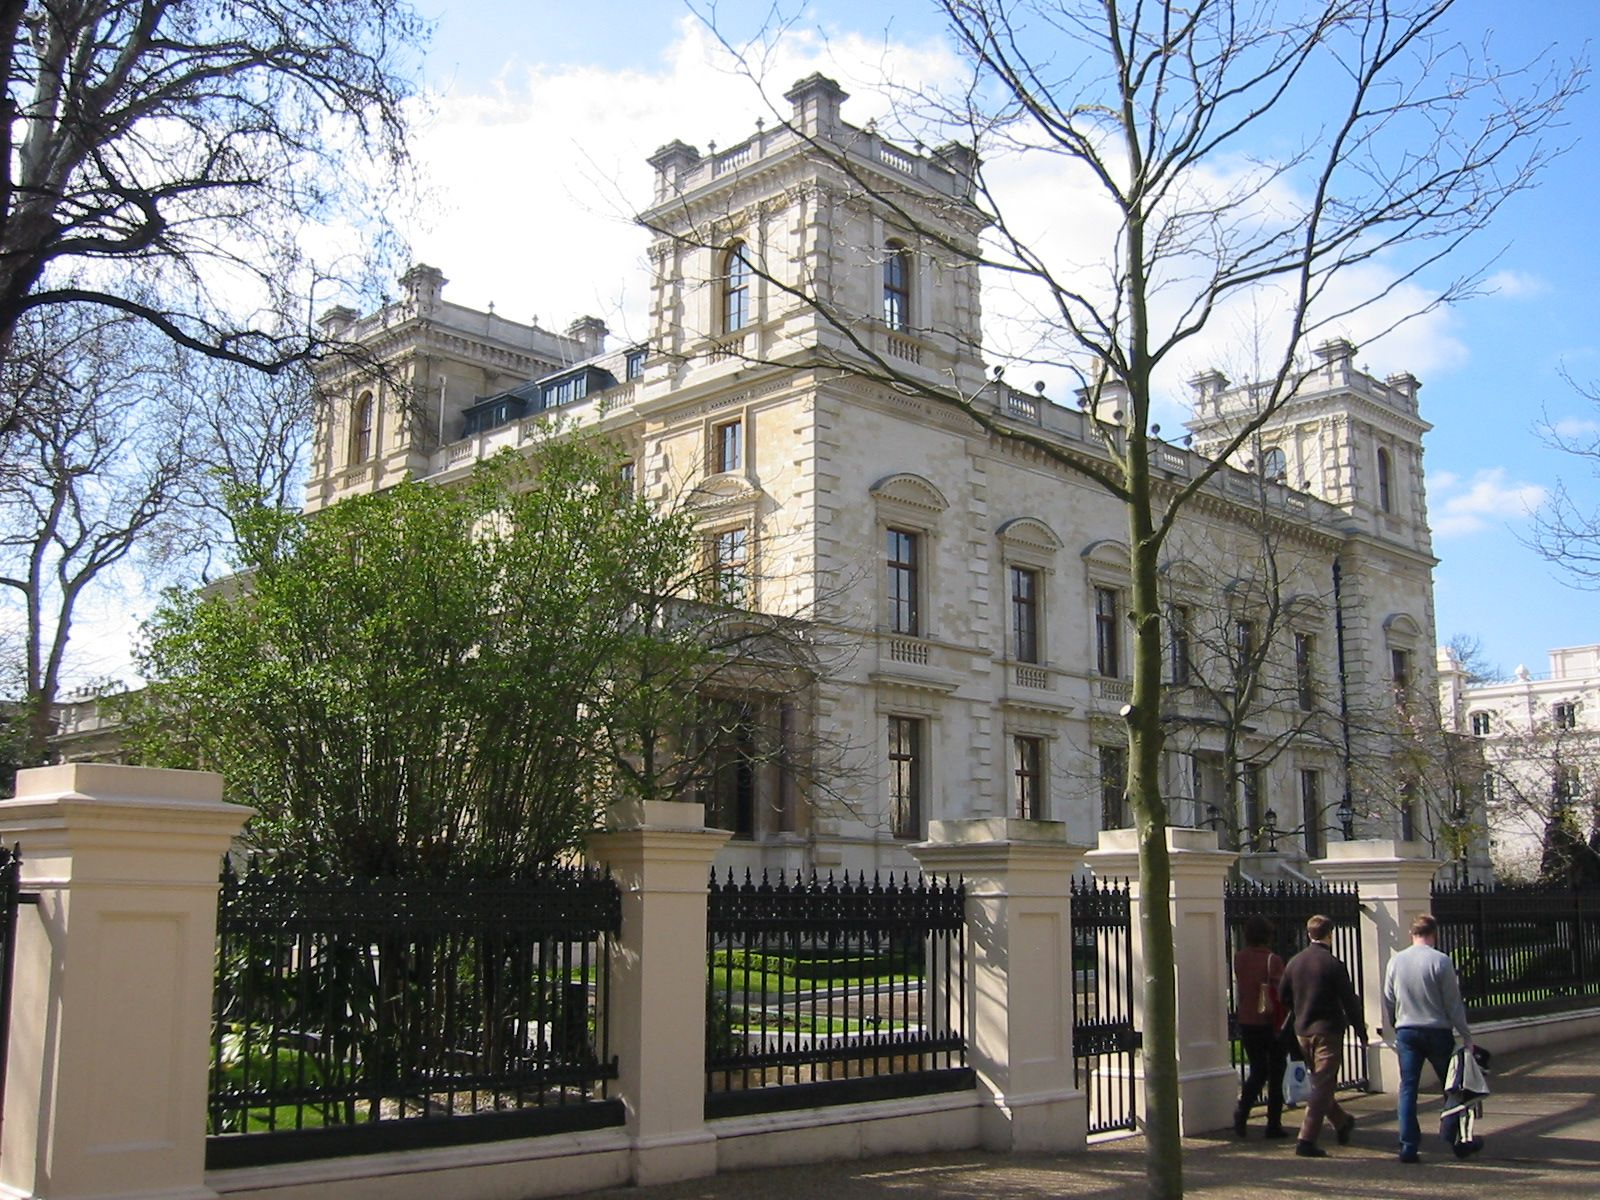 Elegant 18 Kensington Palace Gardens Belongs To Indian Steel Tycoon Lakshmi Mittal,  Who Bought It From Bernie Ecclestone. Previous Owners Also Include Baron De  ...